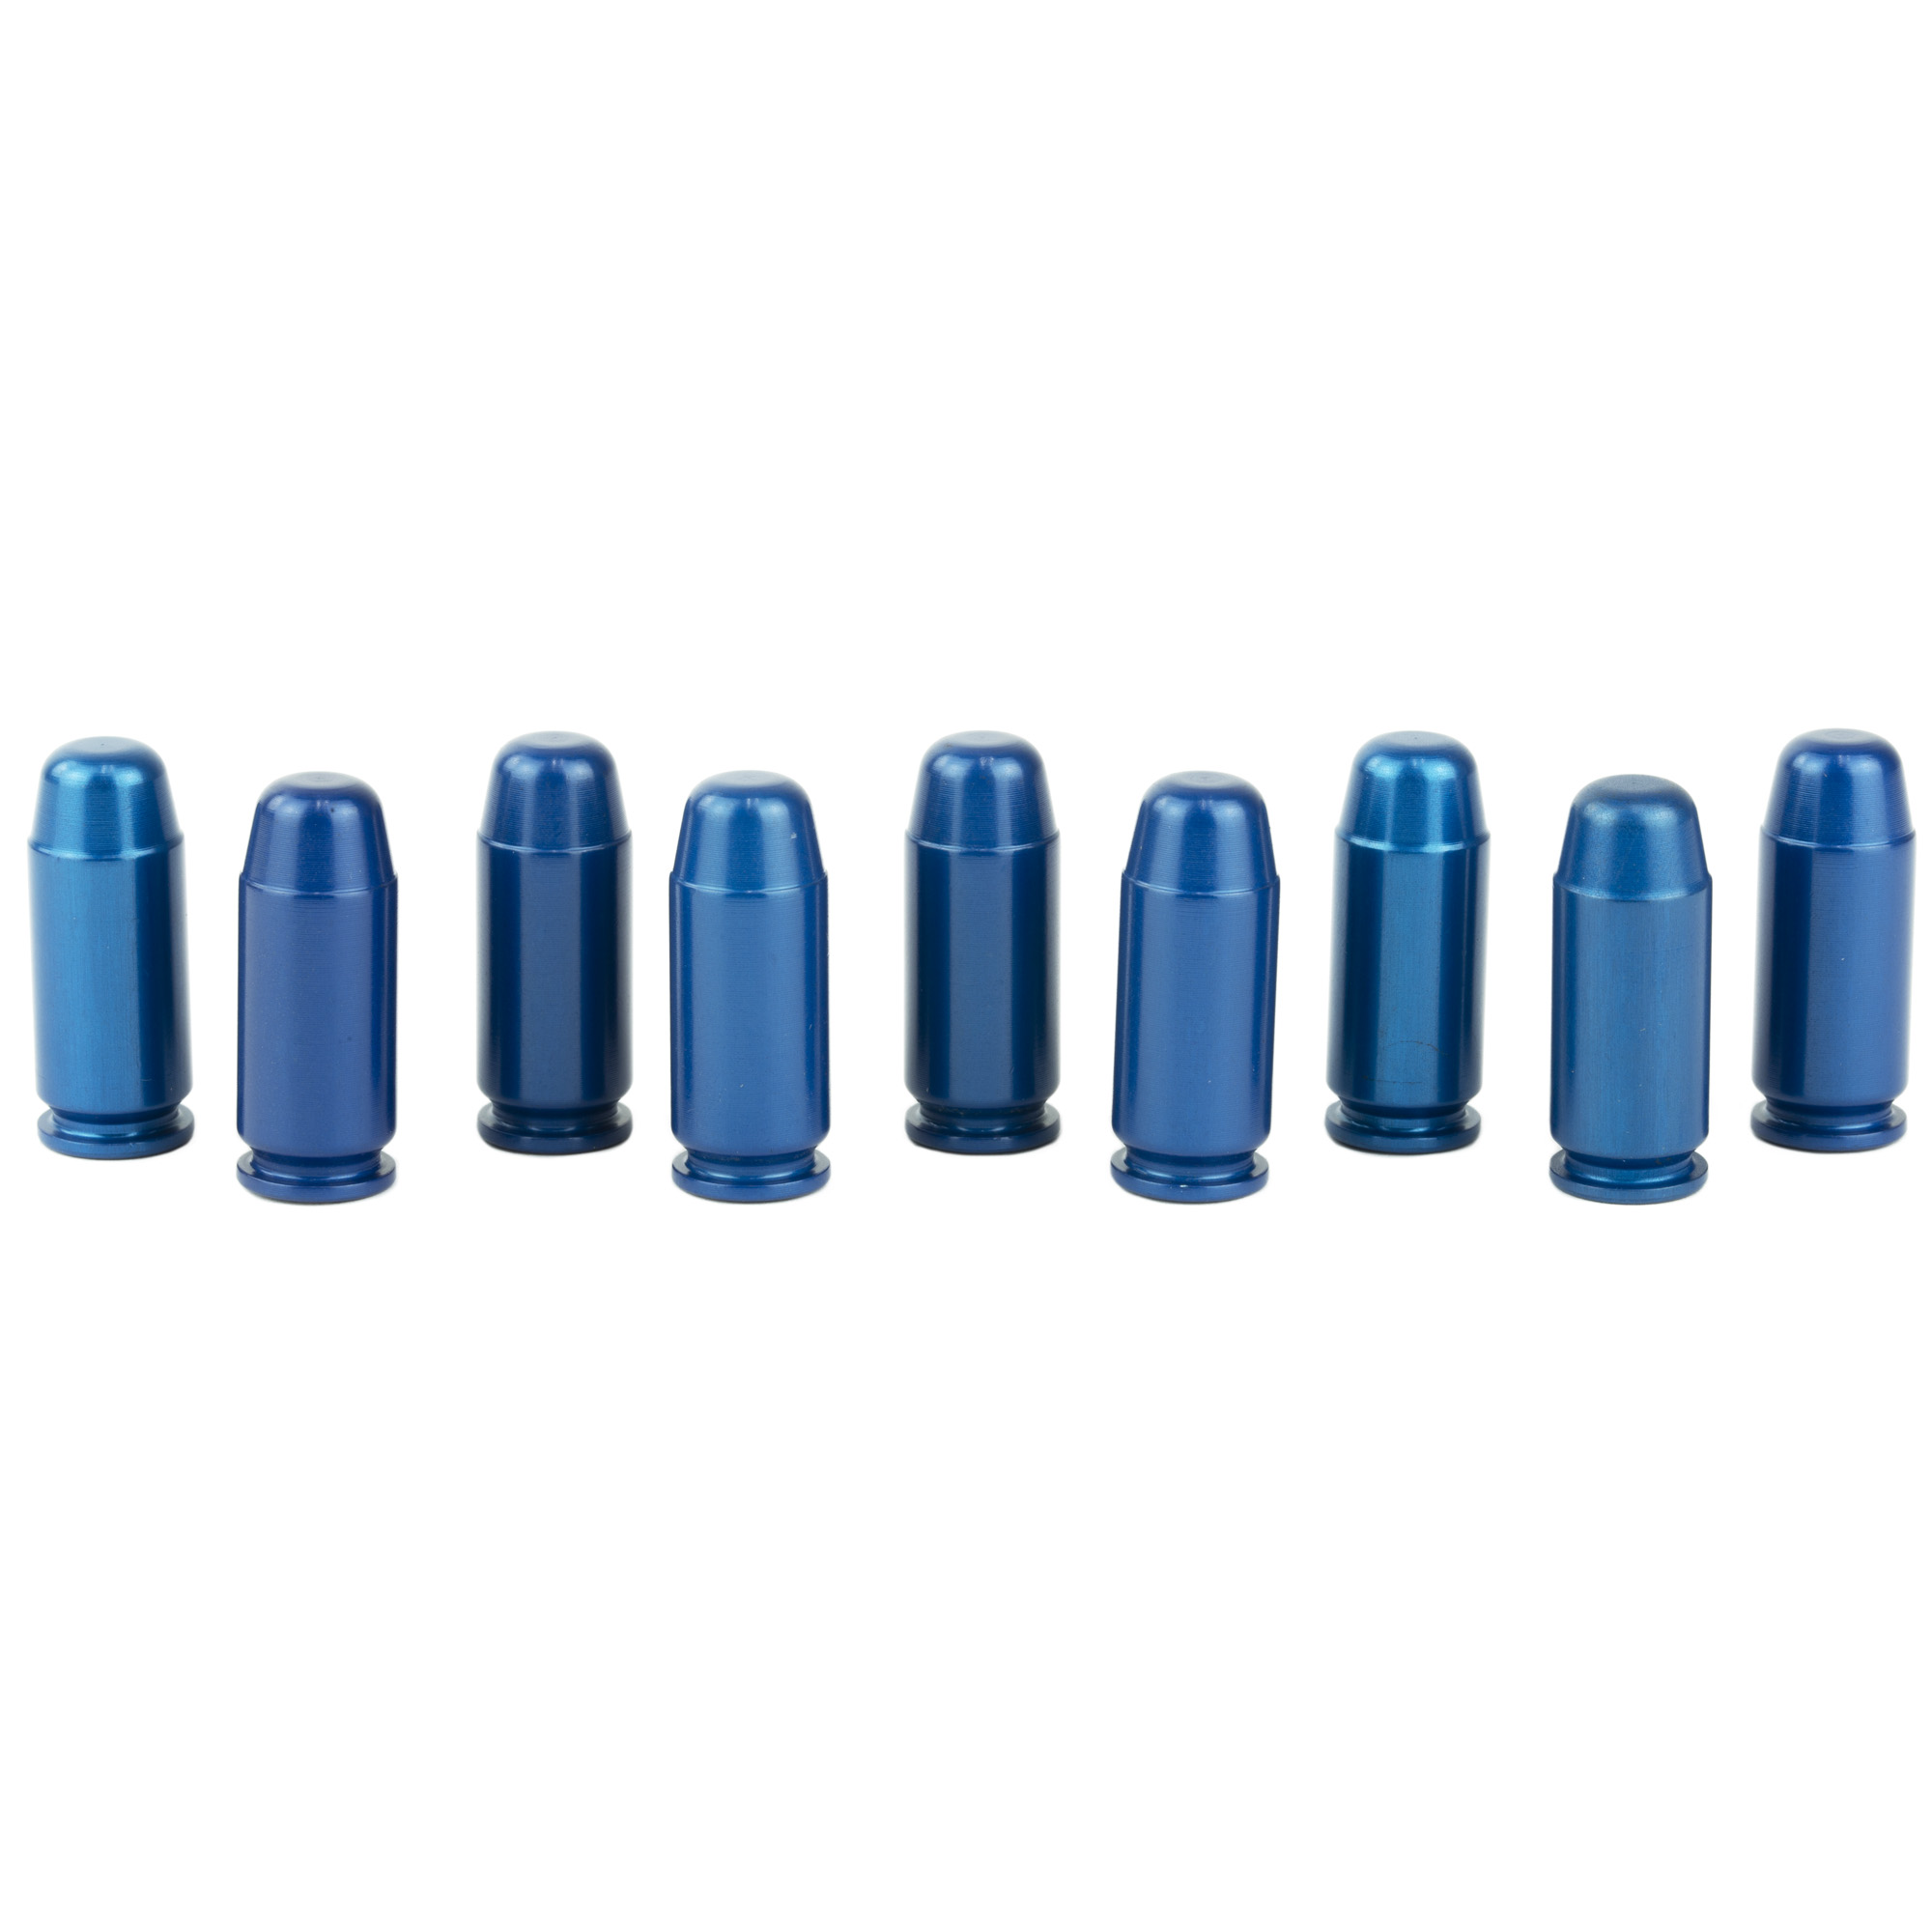 Azoom Snap Caps 40s&w 10pk Blue